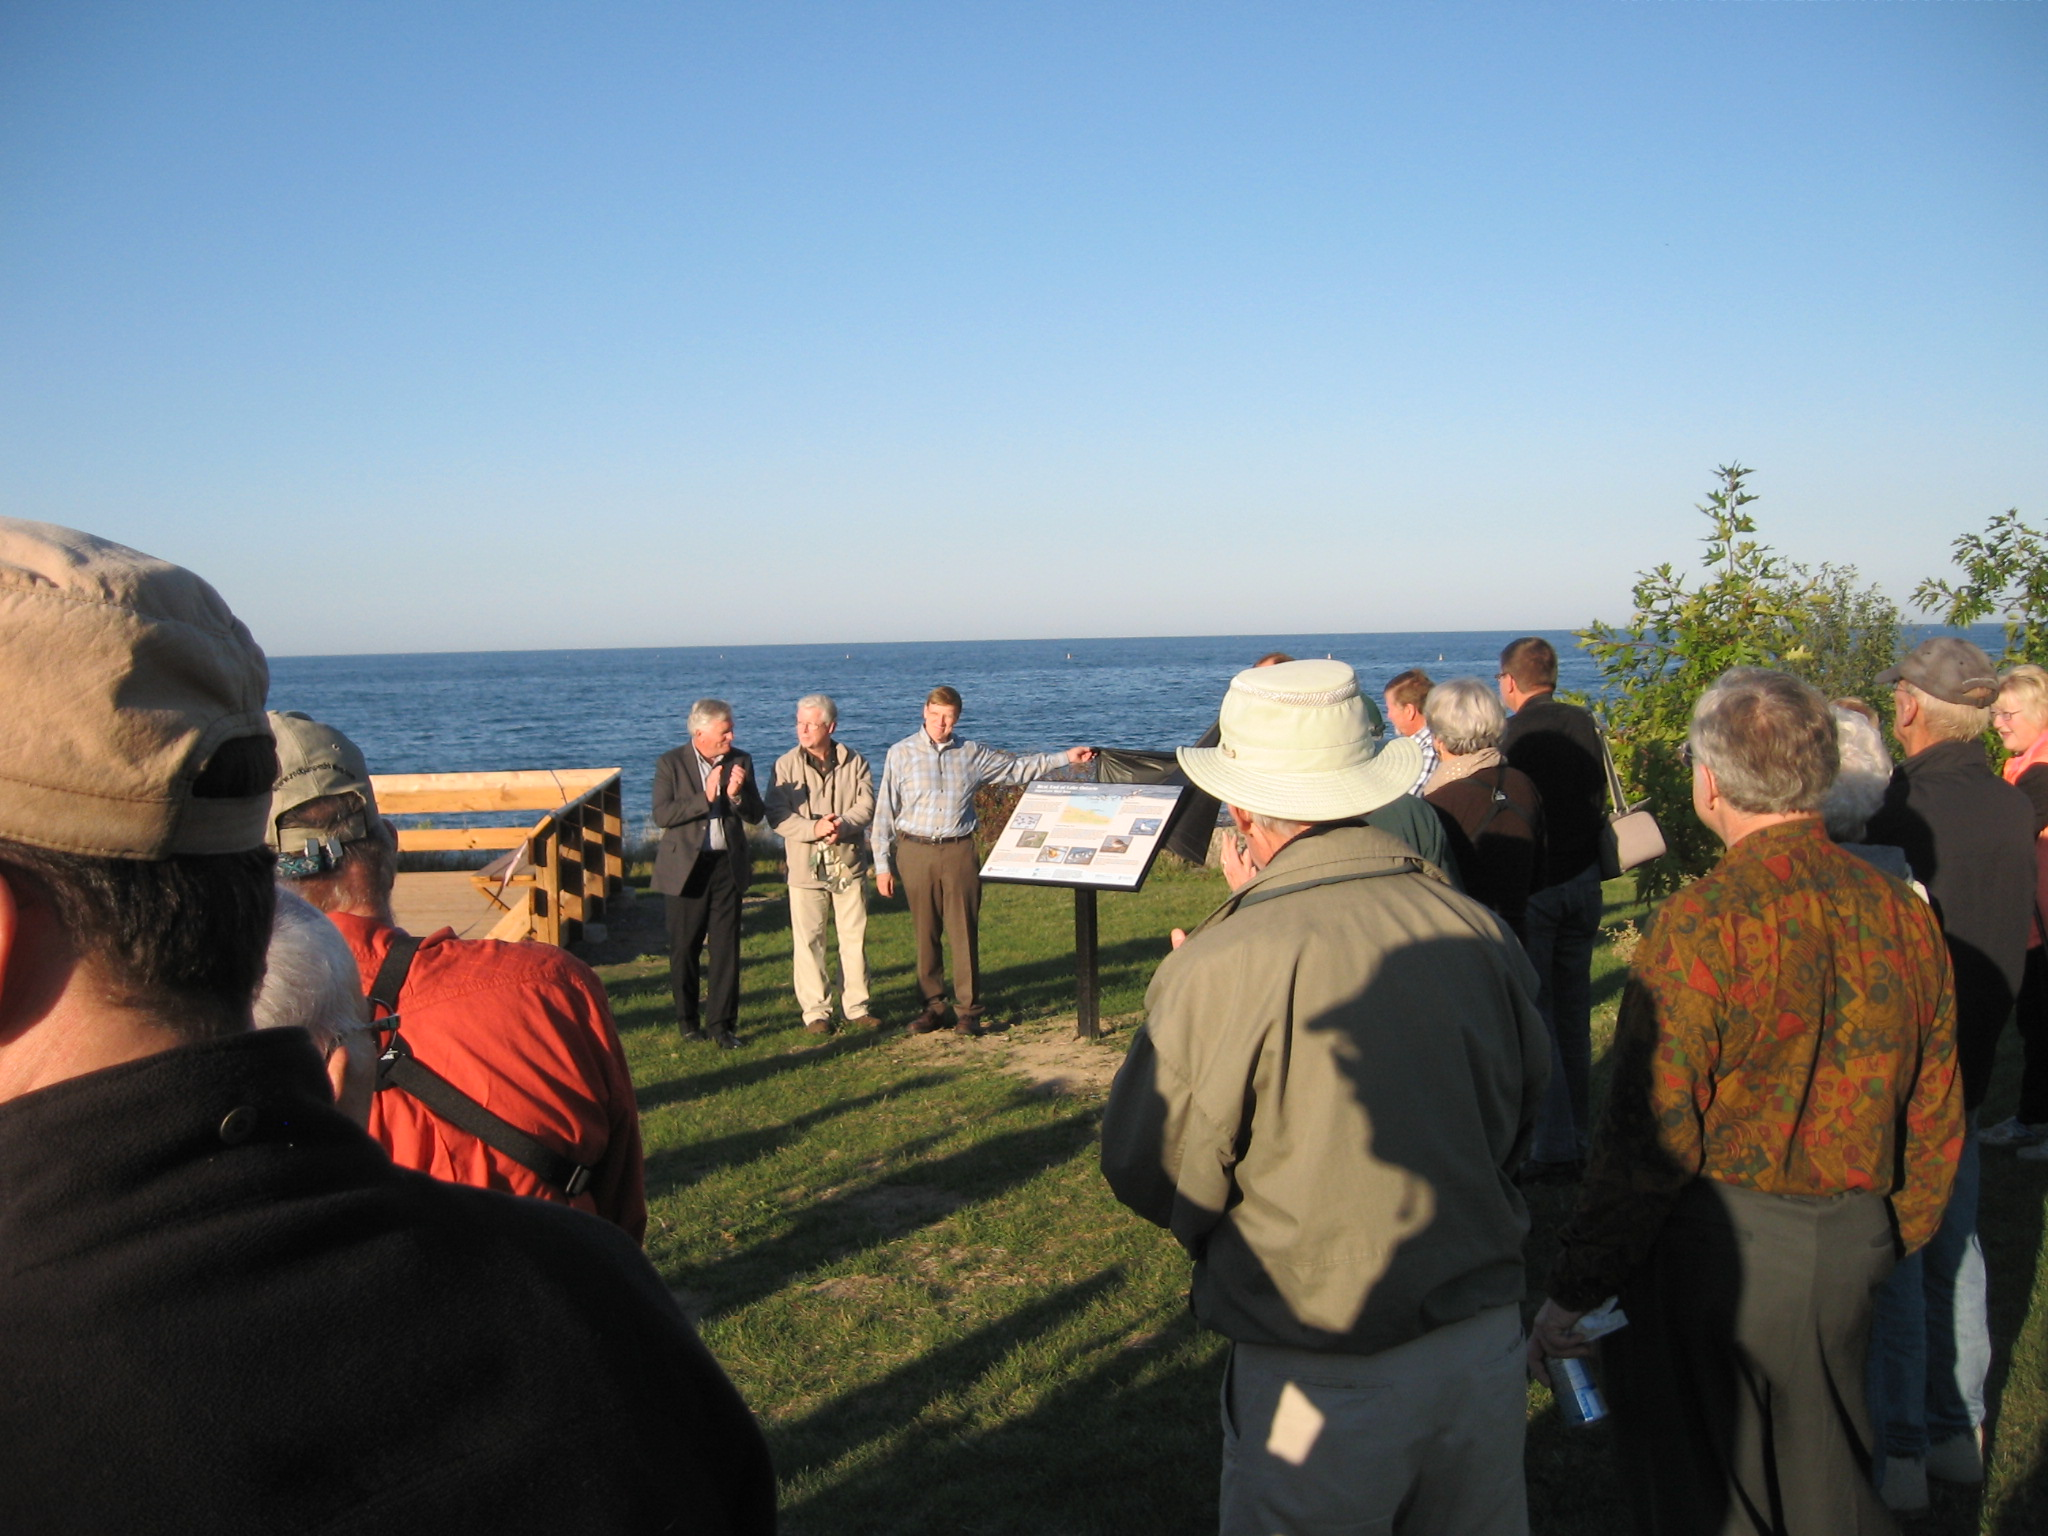 The Grand Opening of the viewing platform and unveiling of the signs. September 24, 2014. Photo by Bon Echo